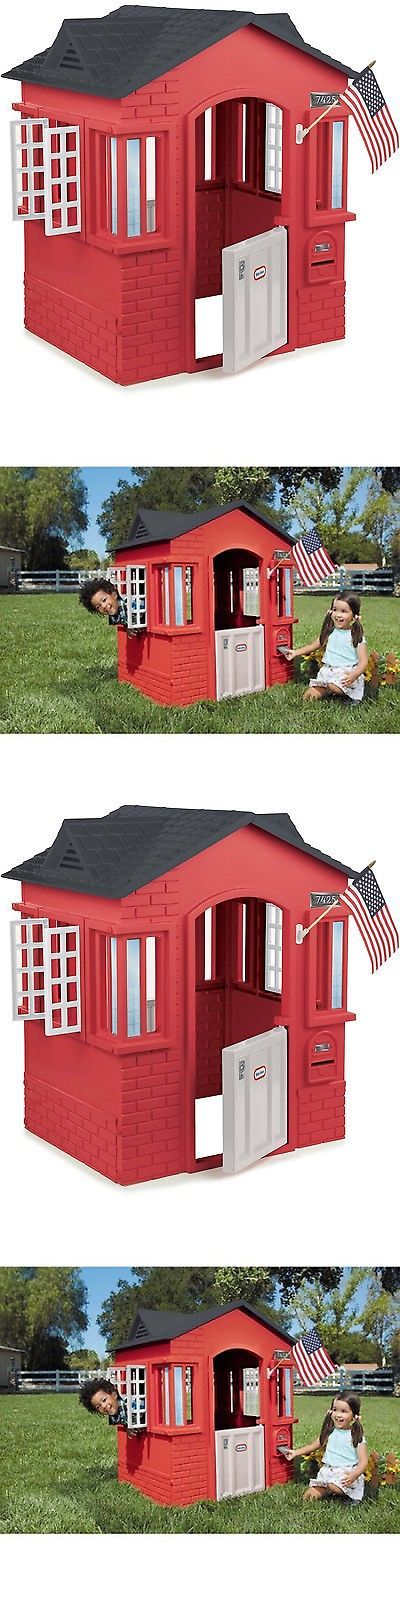 1000 ideas about plastic playhouse on pinterest for Used kids playhouse